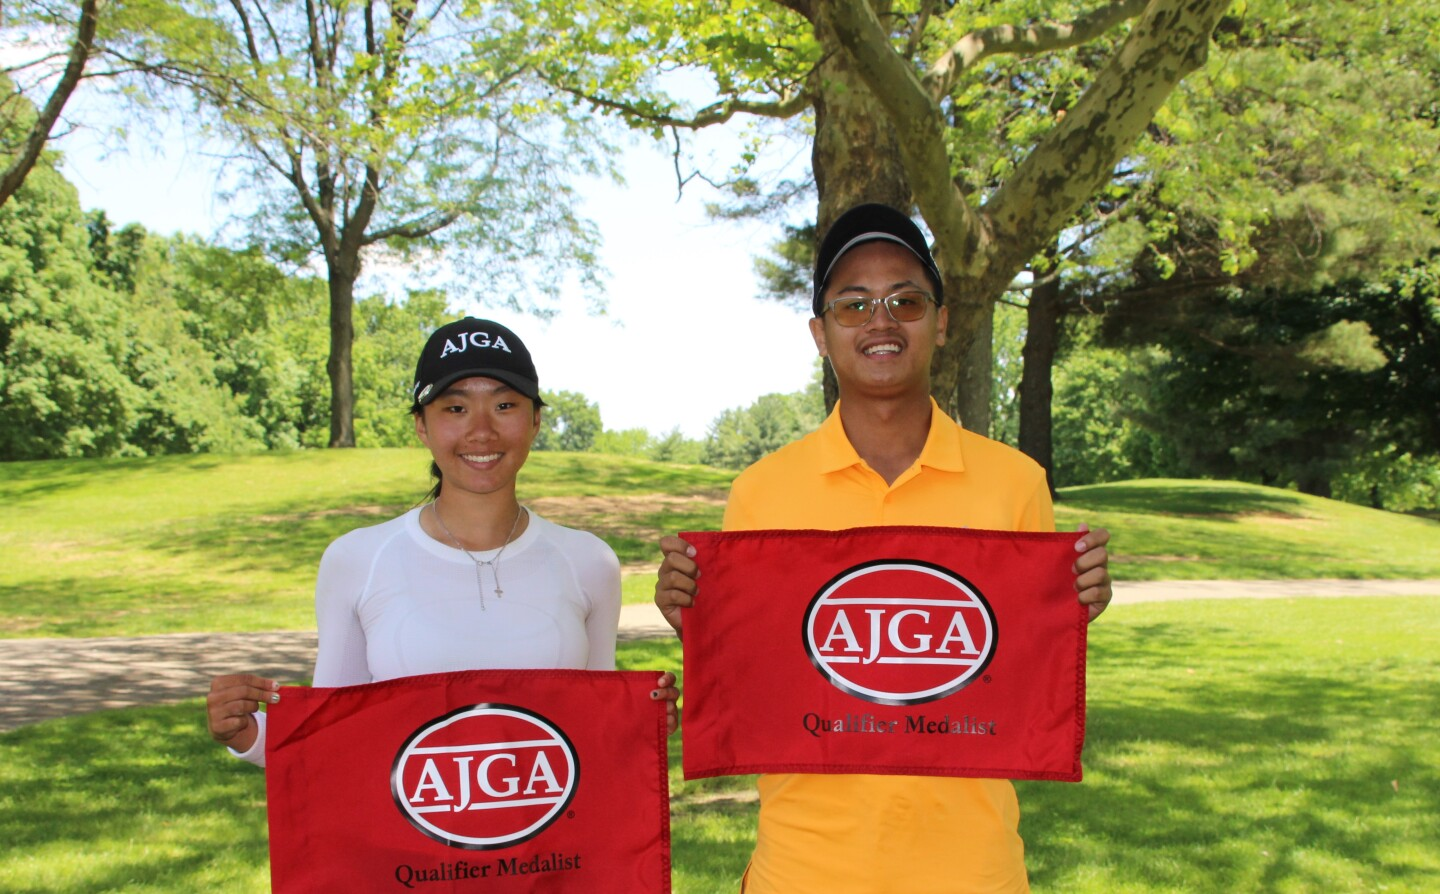 2019 the Memorial Jr. Qualifier Medalist photos FINAL.jpg